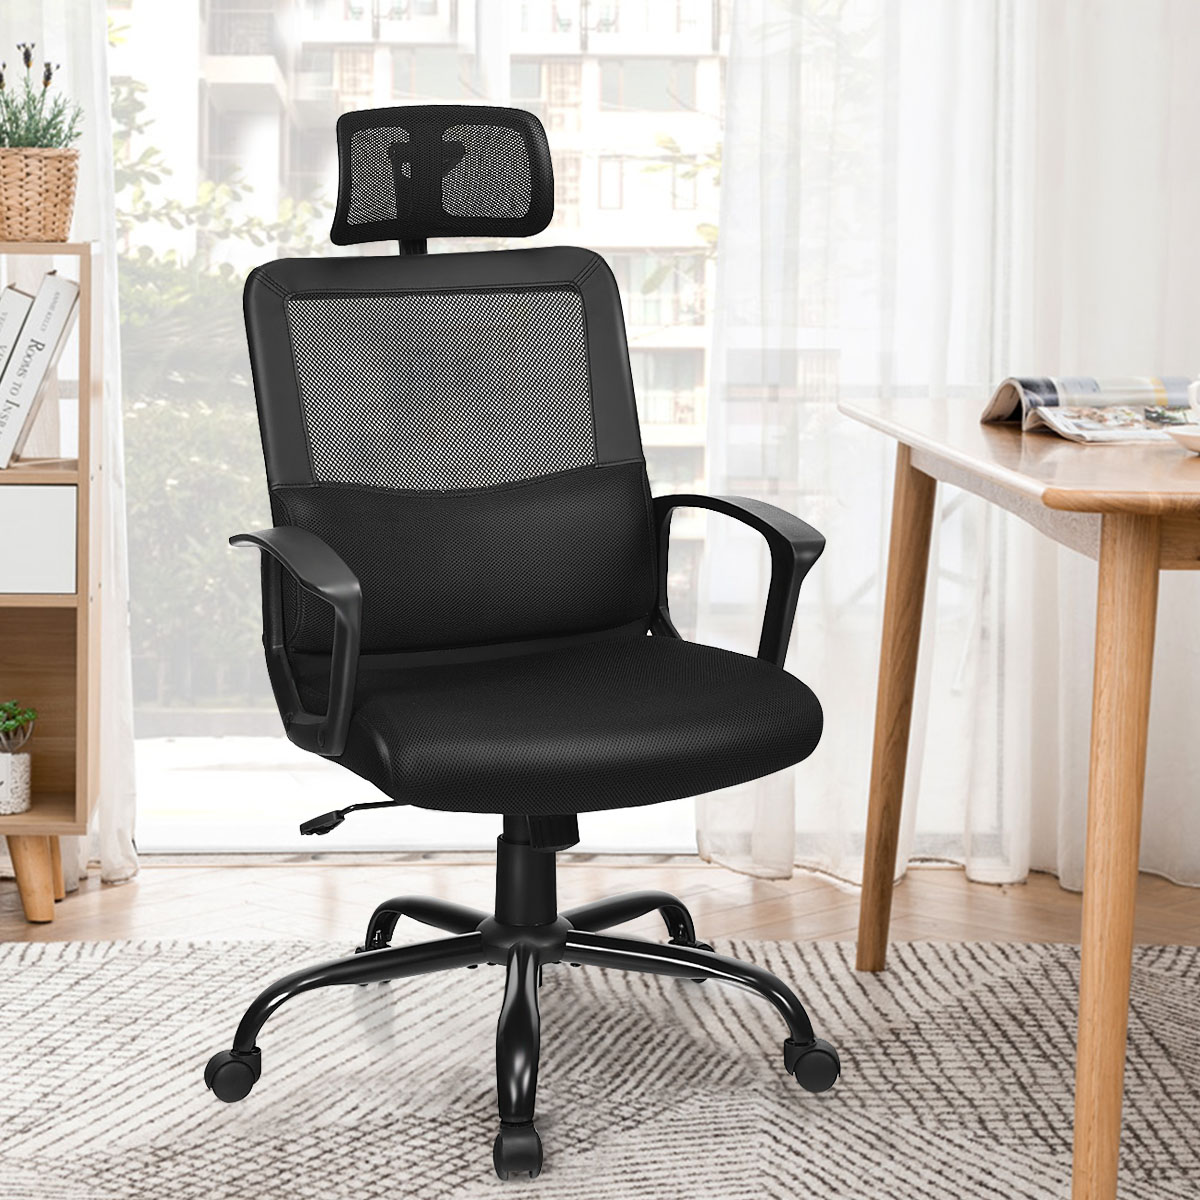 Costway Mesh Office Chair High Back Ergonomic Swivel Chair W/ Lumbar Support & Headrest